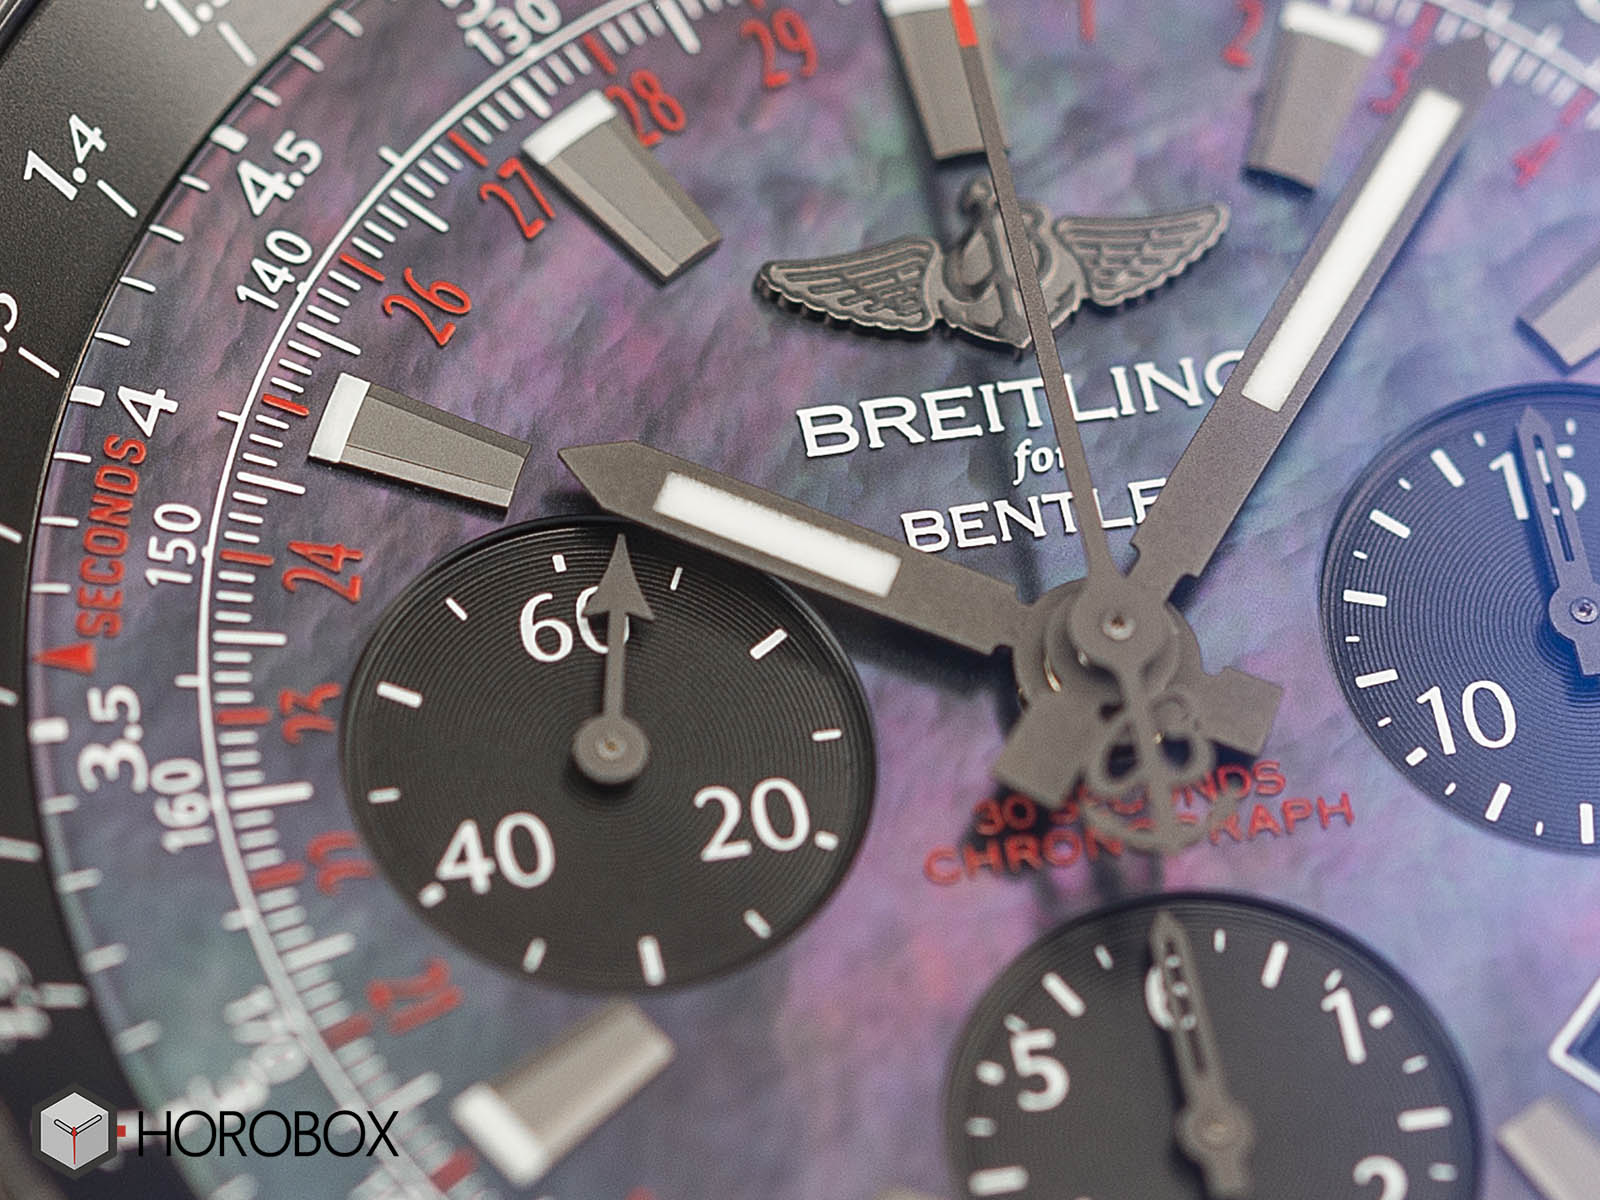 Breitling-for-Bentley-B06-Midnight-Carbon-2.jpg